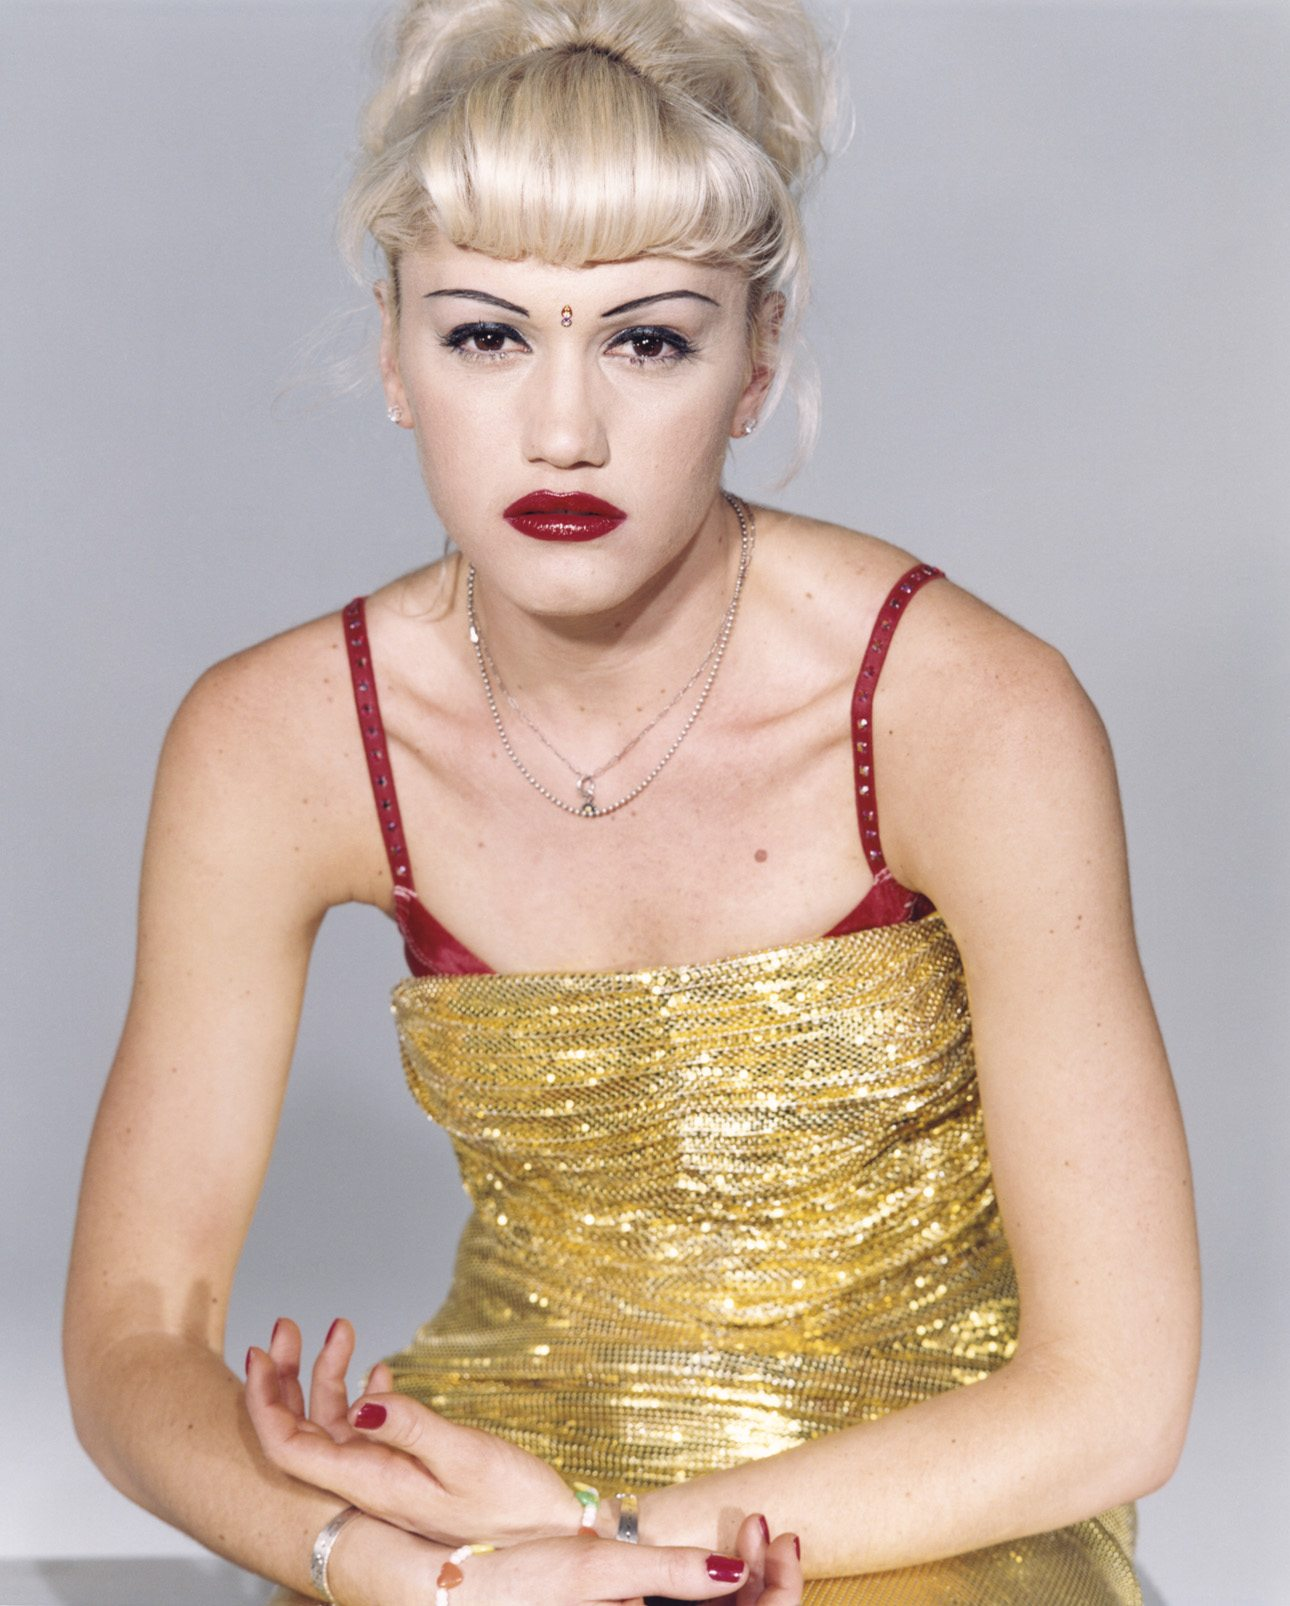 Gwen Stefani from 'No Doubt', April 1996, New York , from the series'Pourquoi m'as-tu abandonnée?'